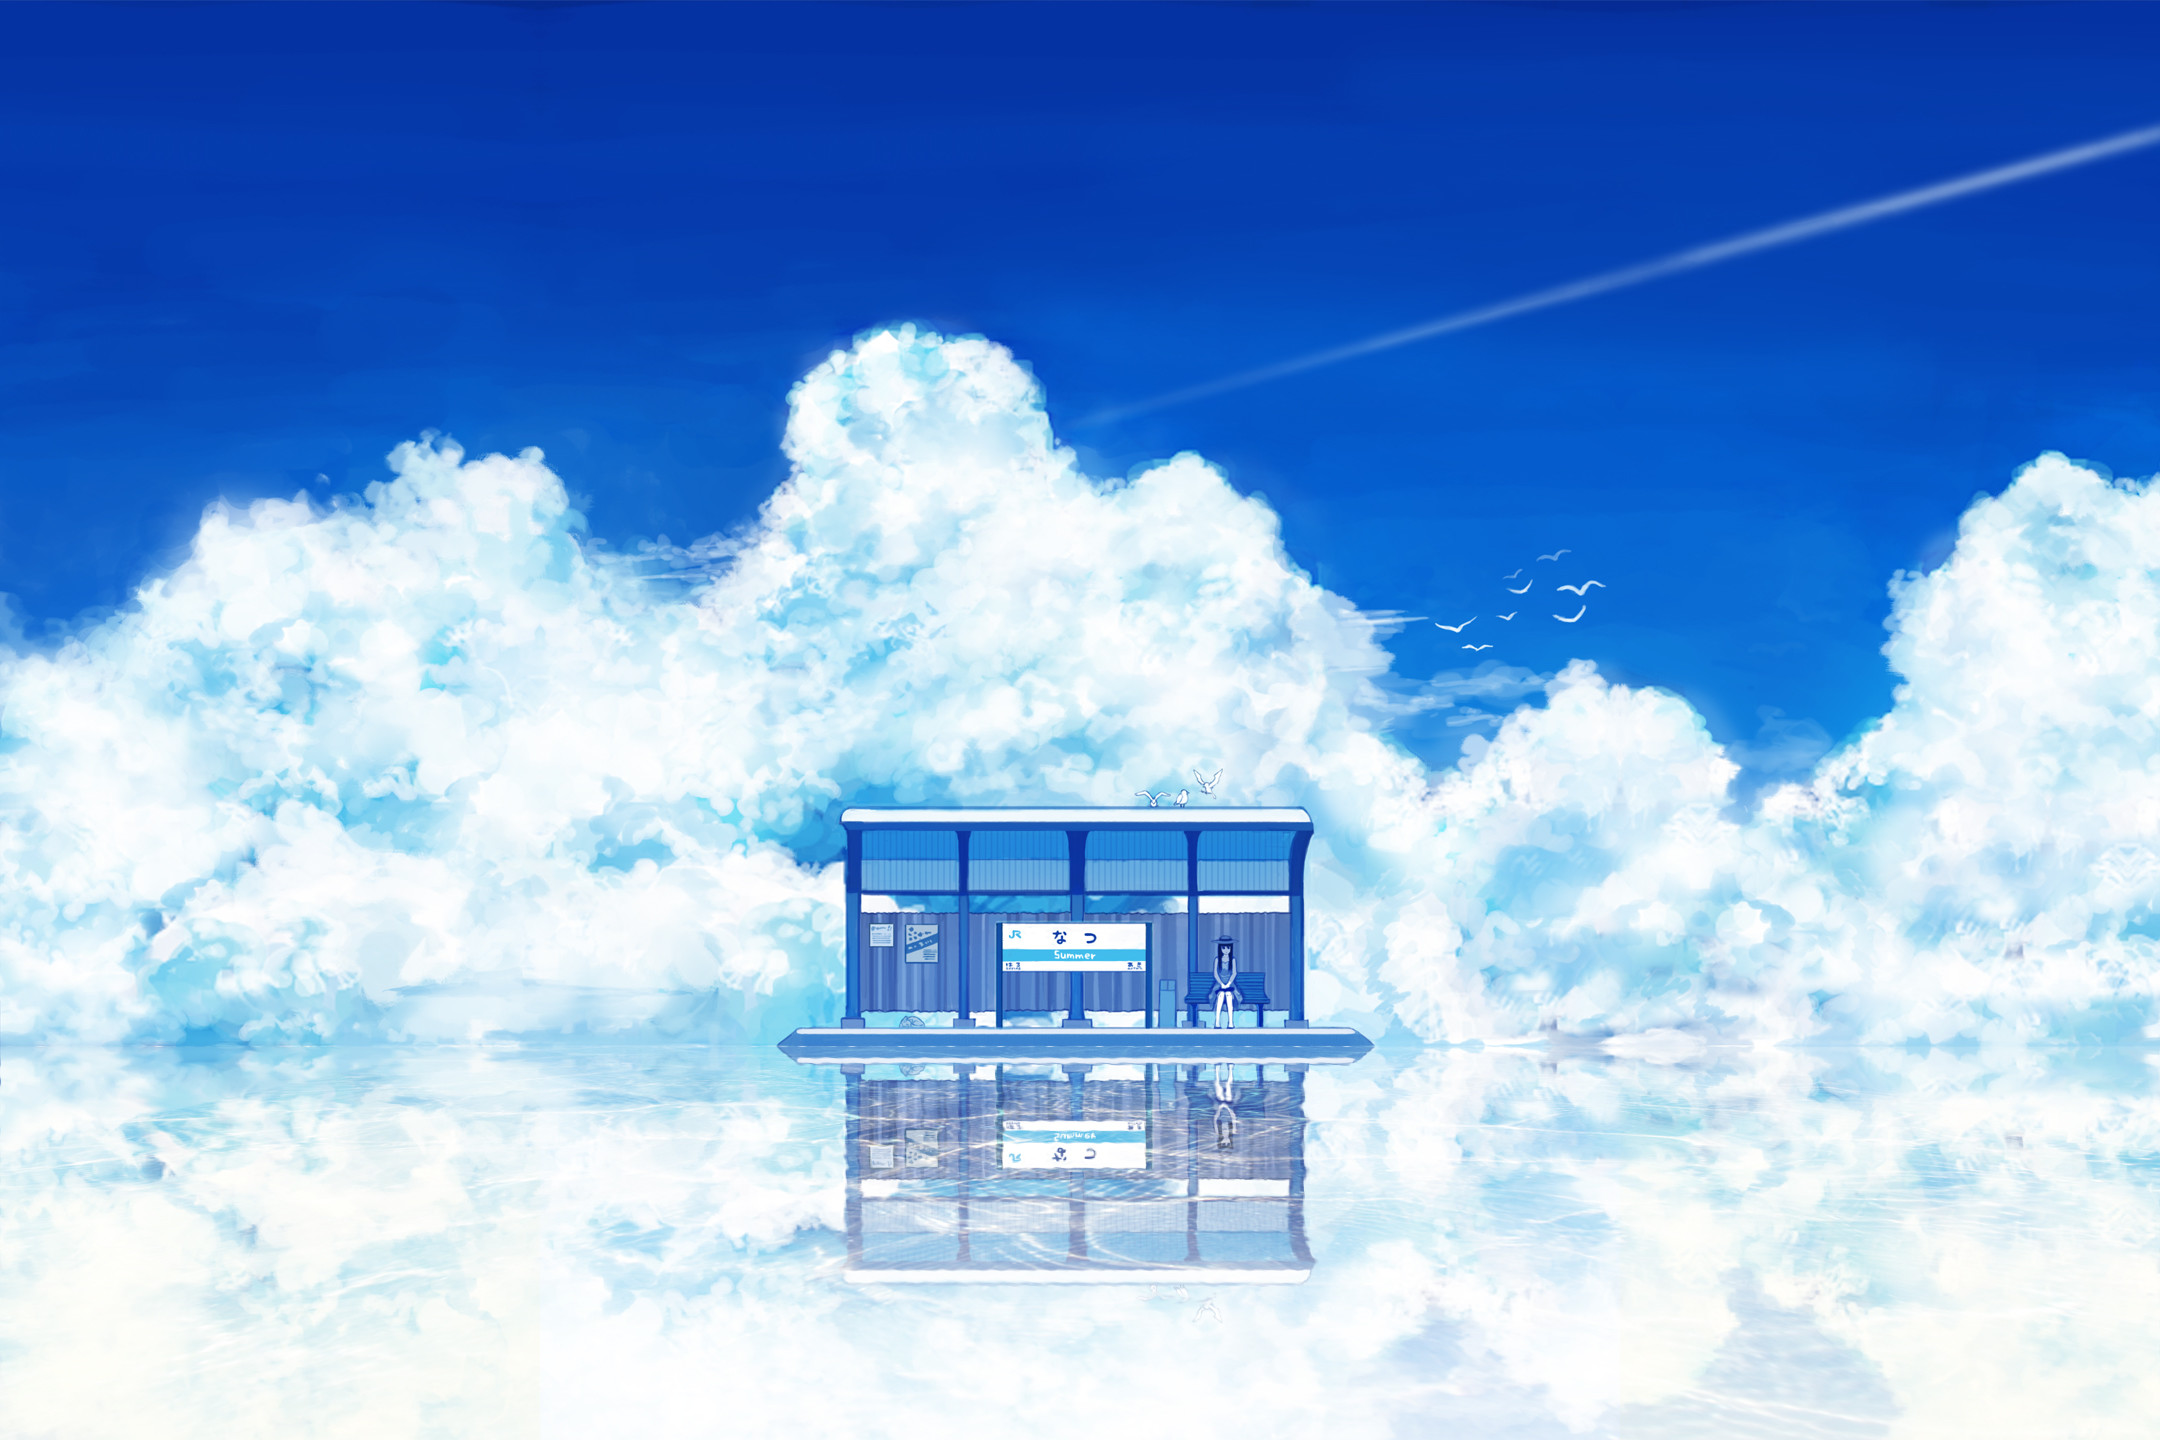 Anime Scenery Wallpapers 78 Background Pictures